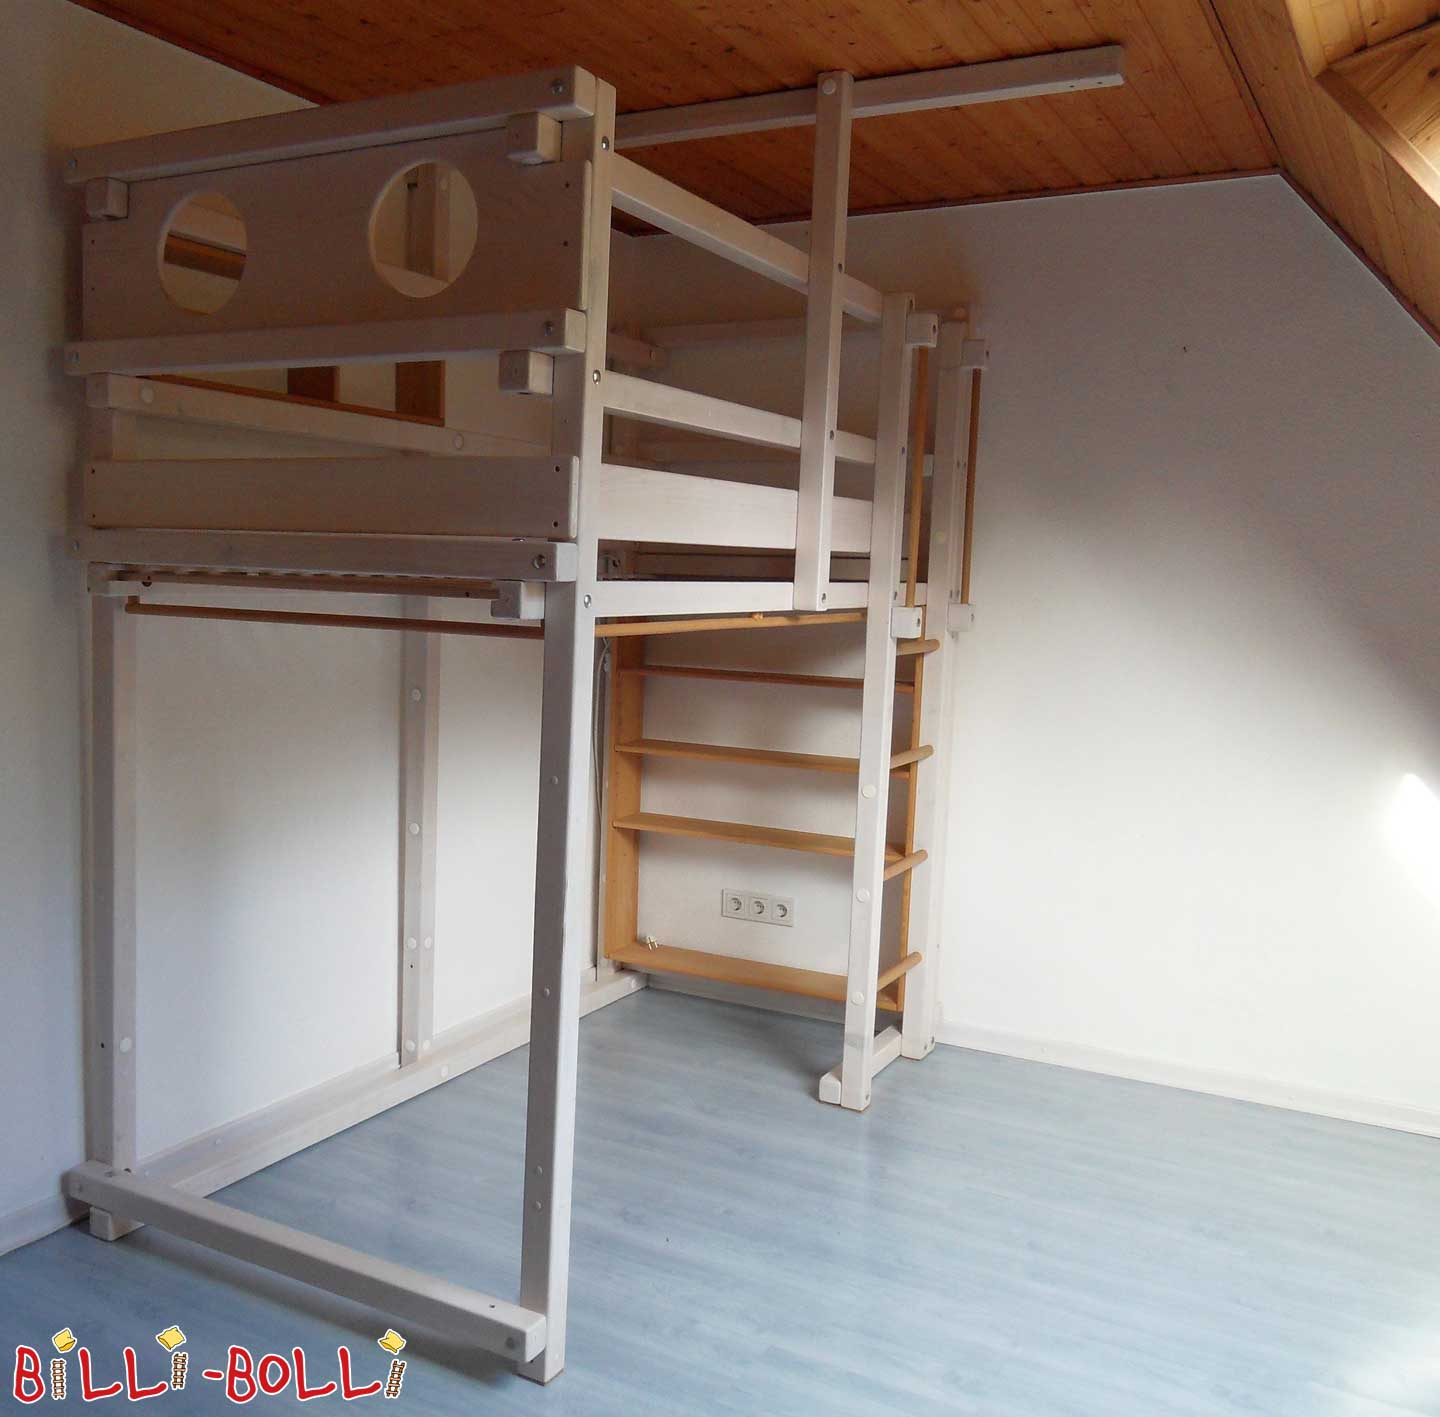 Growing upbed, 90 x 190, spruce white glazed (second hand loft bed)